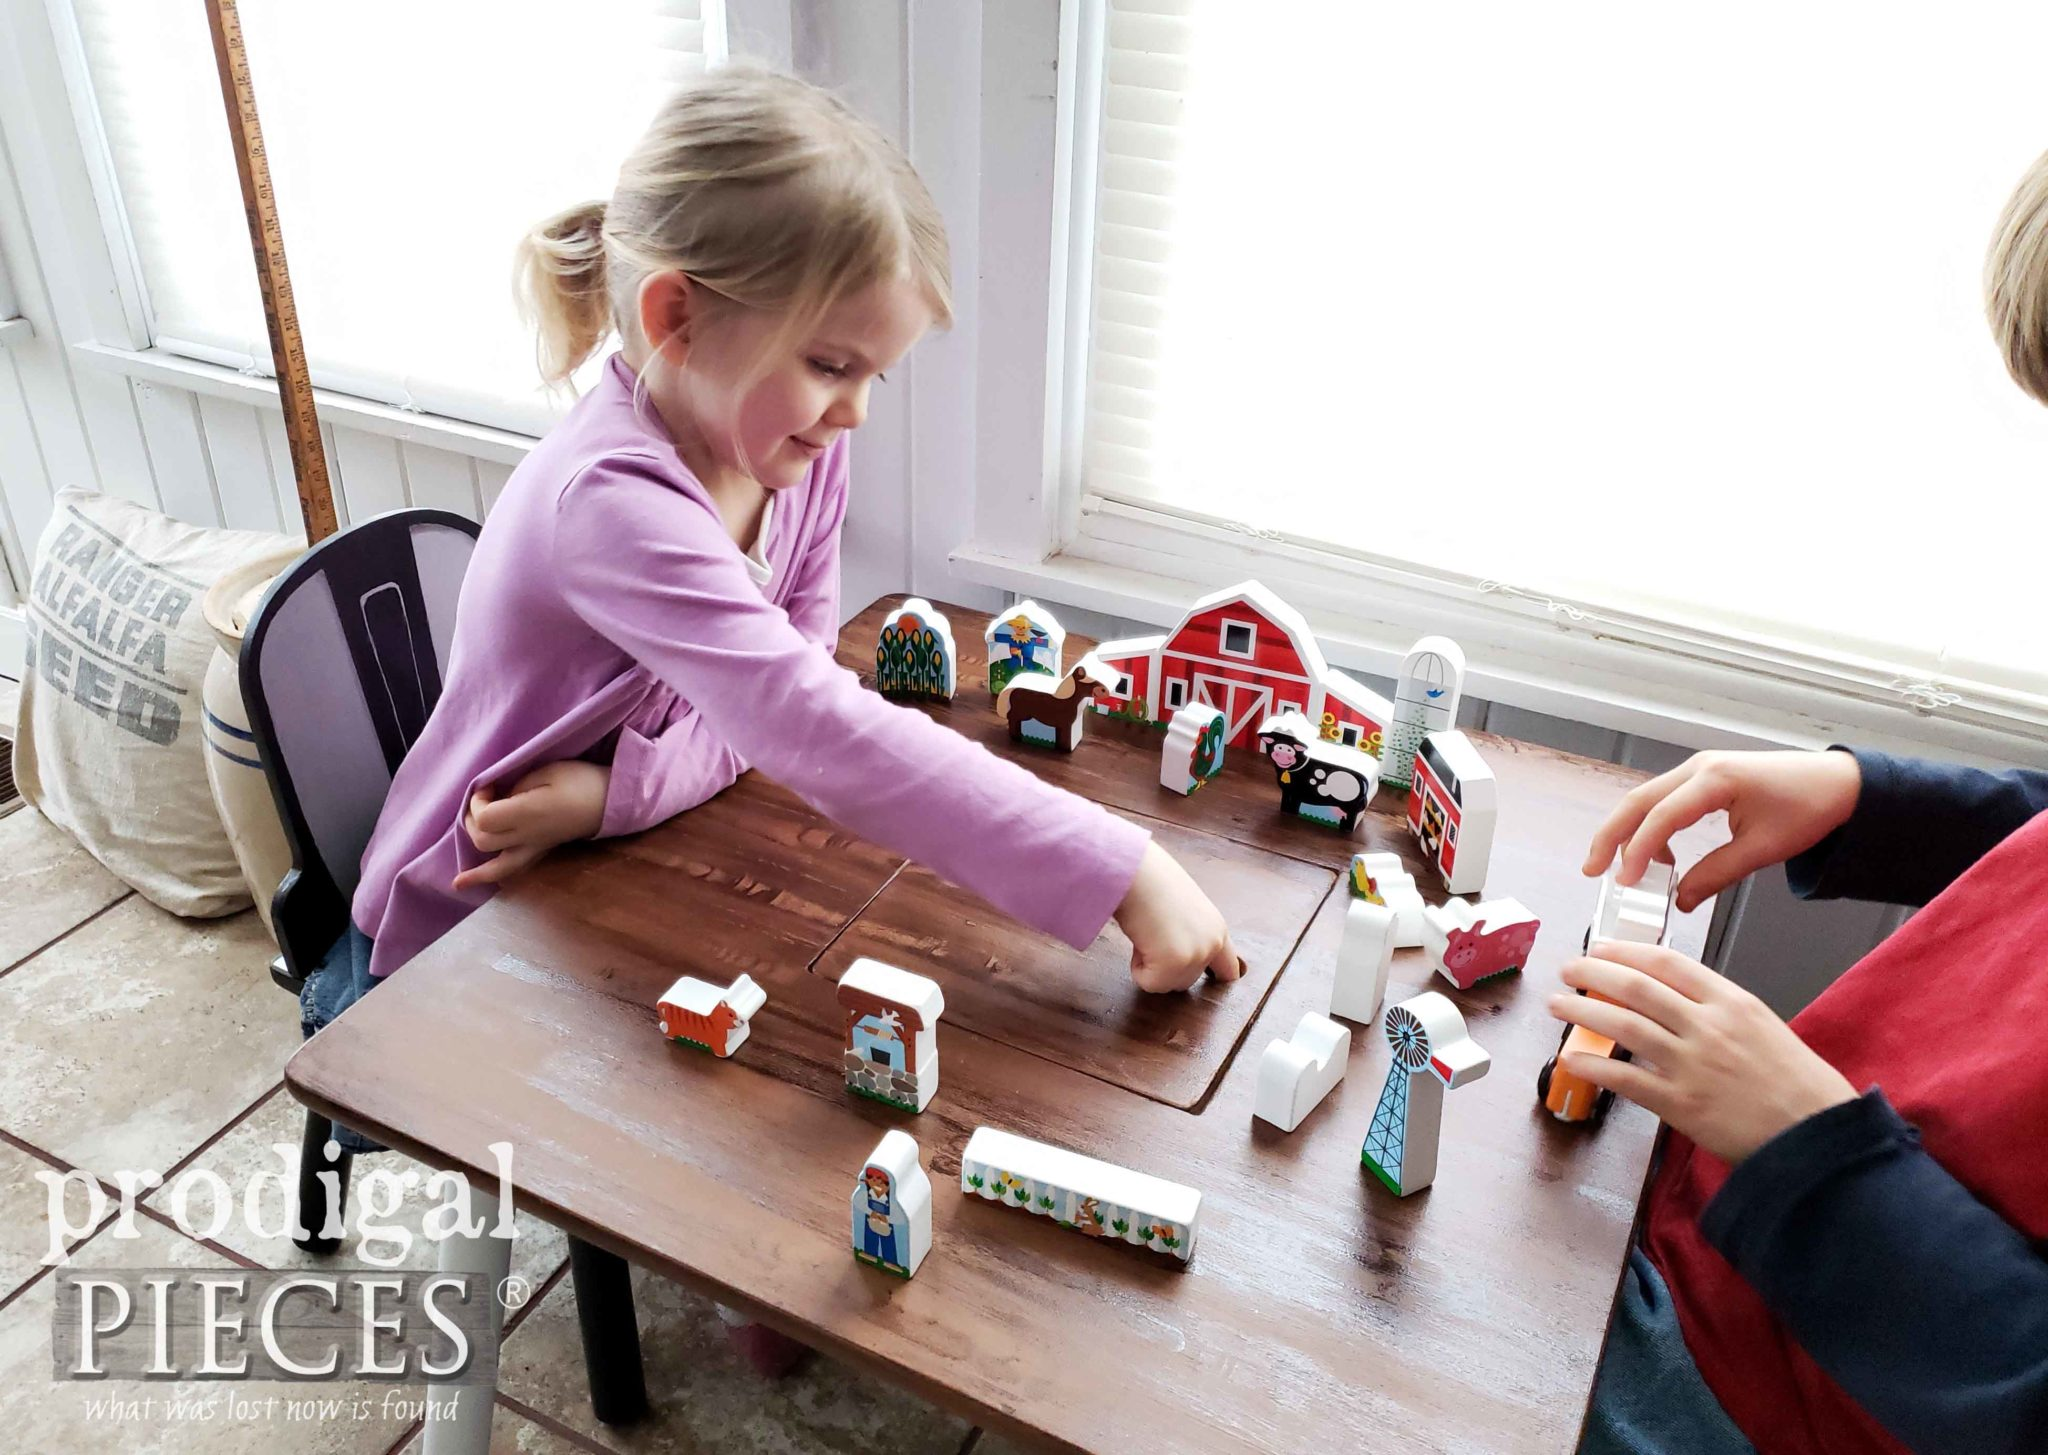 Toddler Playing with Modern Farmhouse Play Table Made New by Larissa of Prodigal Pieces | prodigalpieces.com